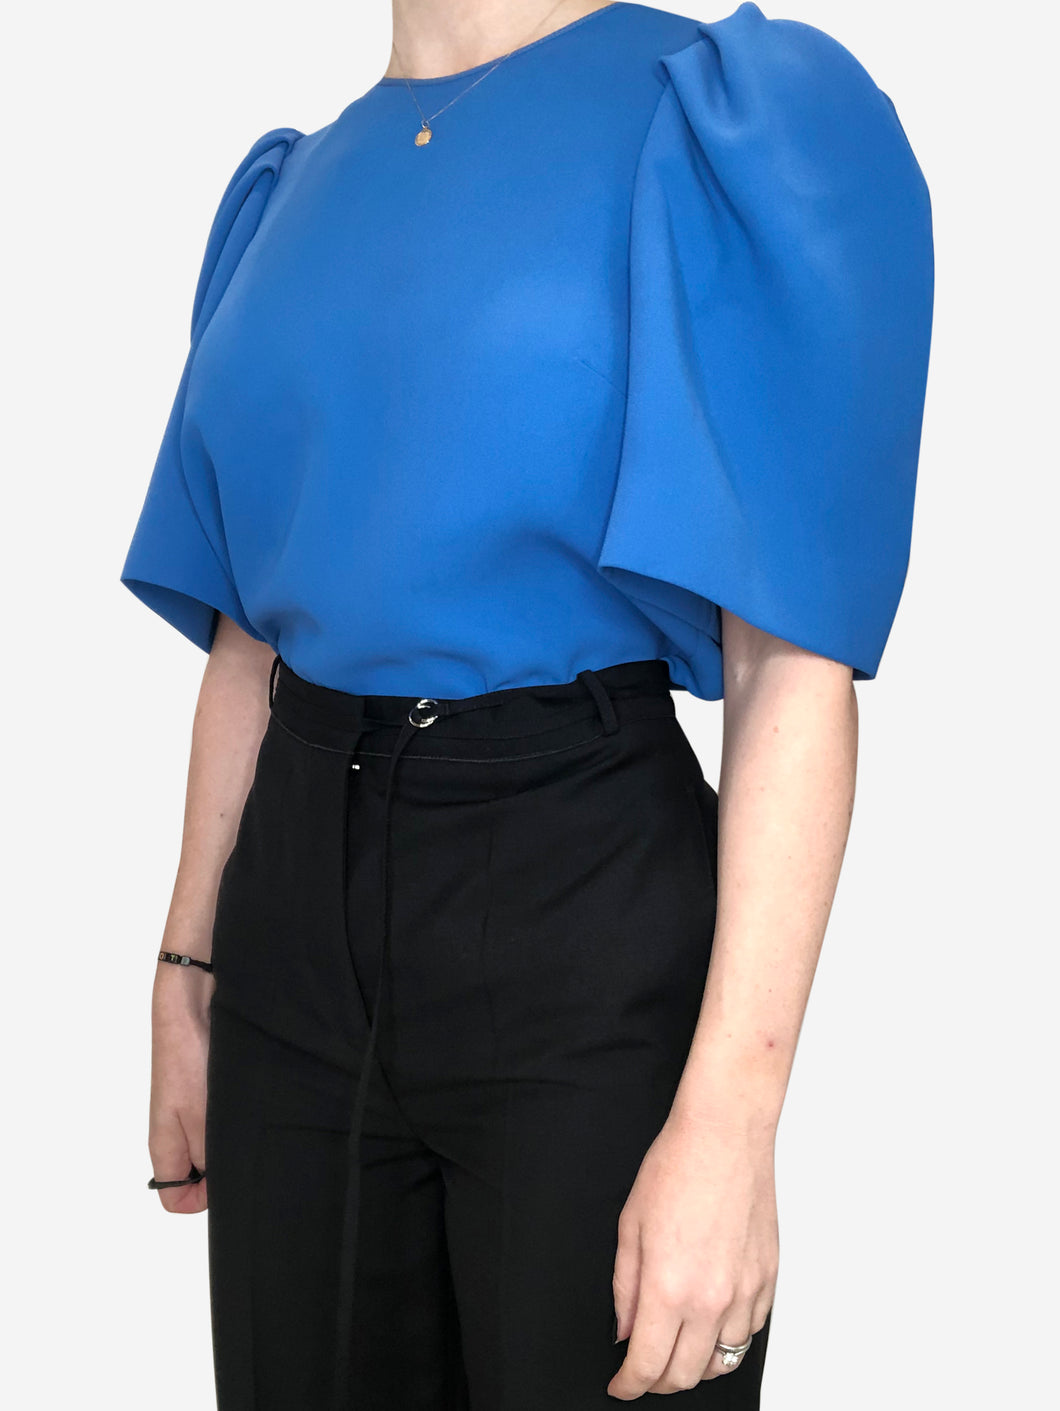 Blue ruffle shoulder short sleeves top - size 8